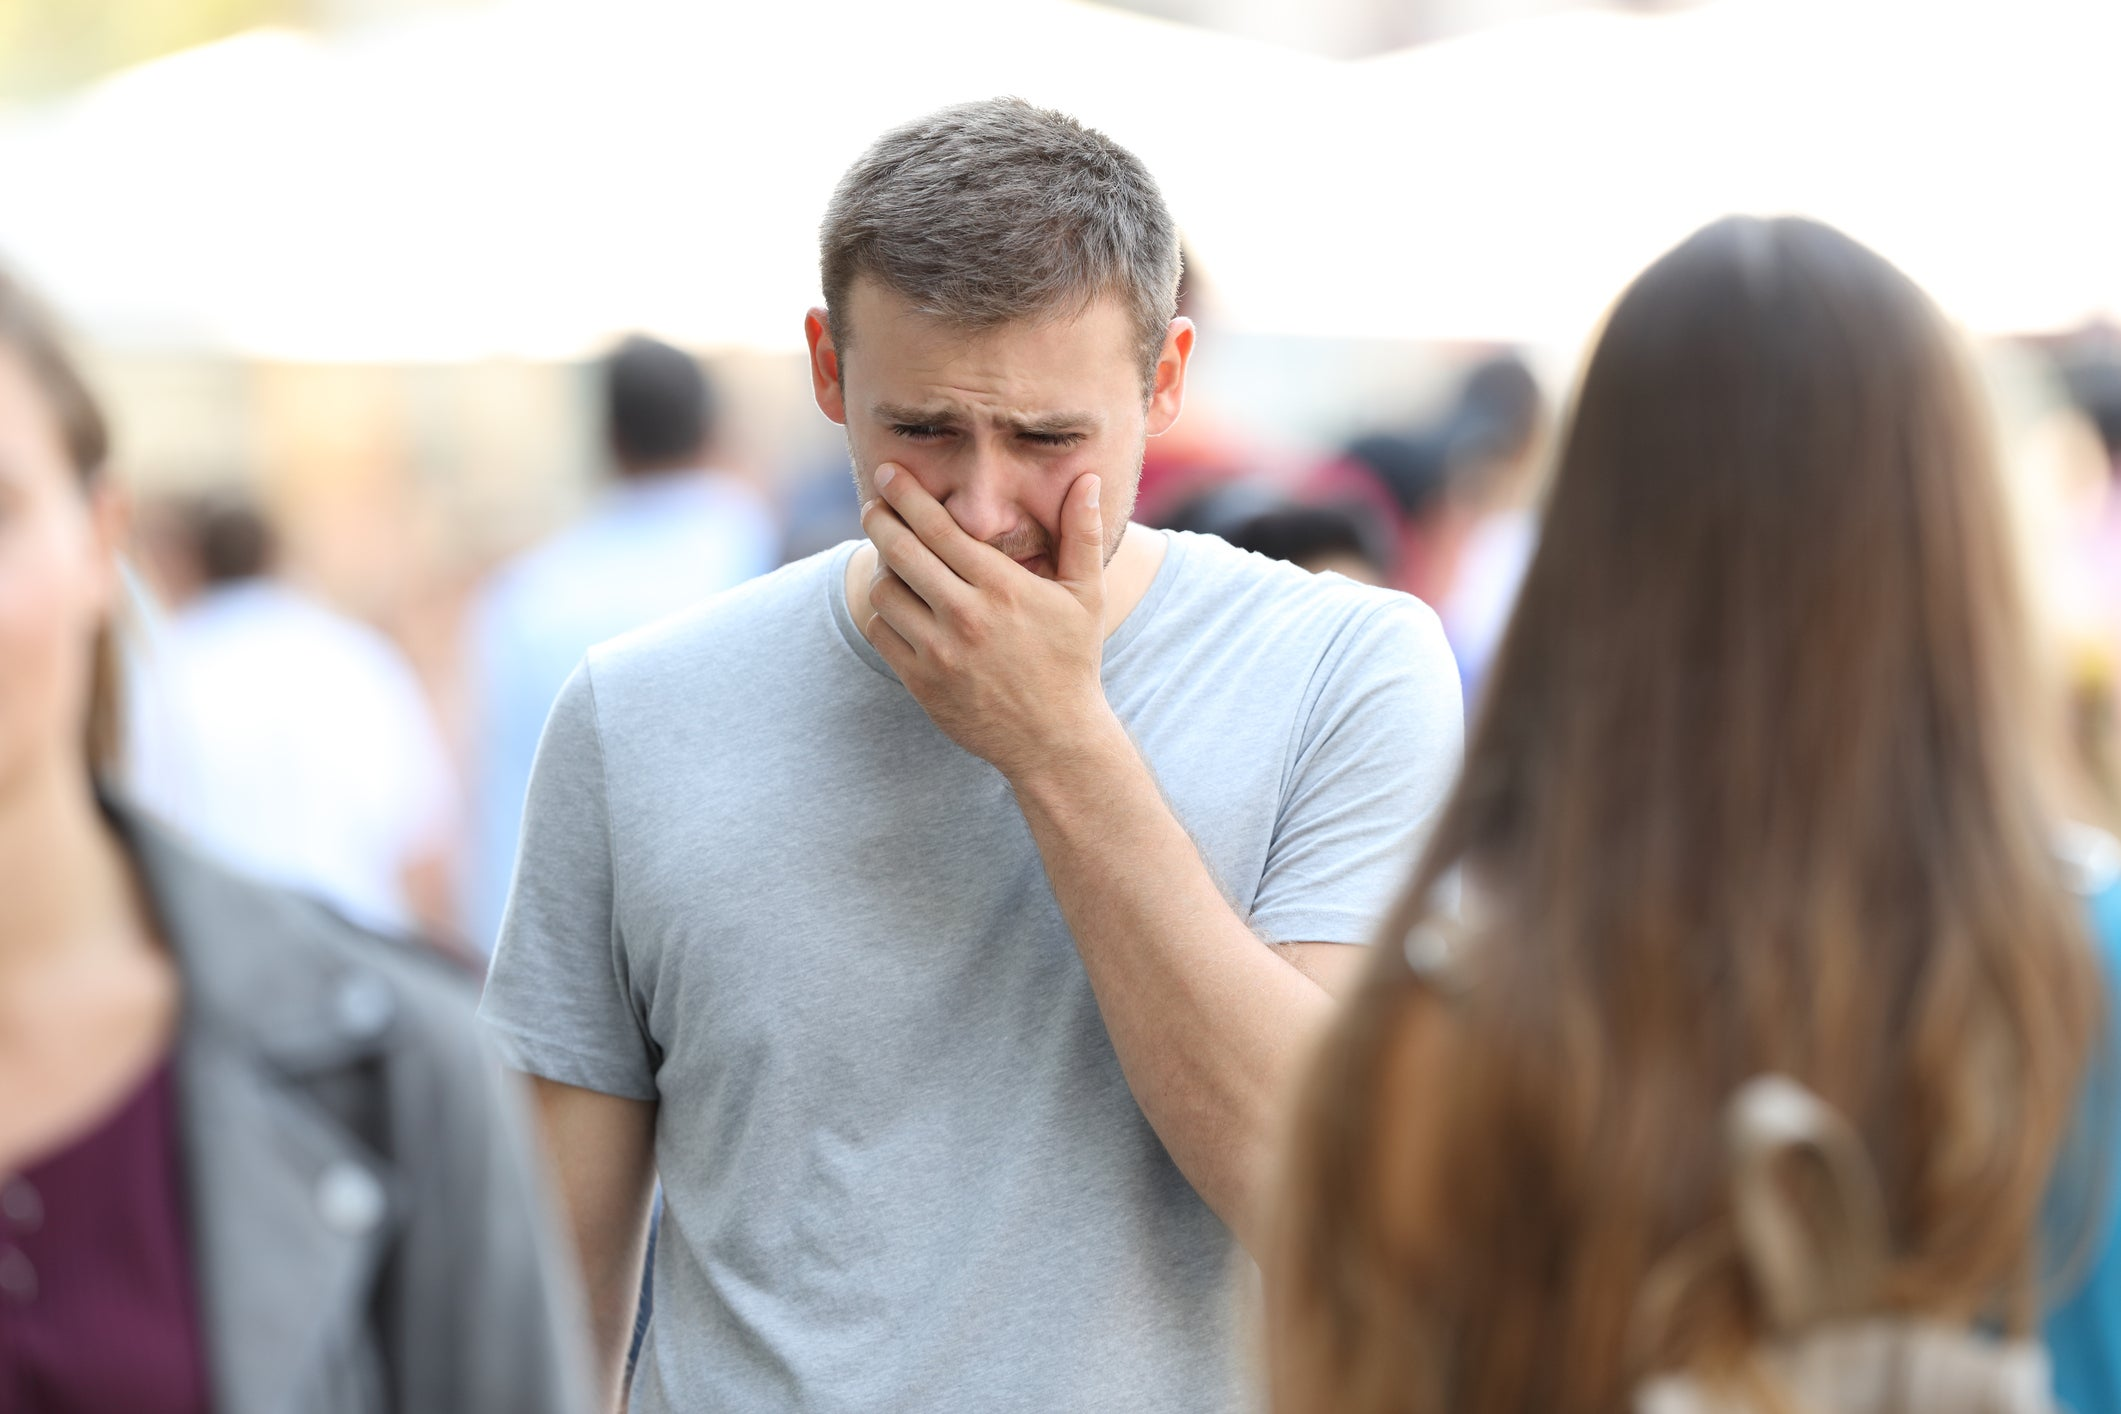 A man crying in the middle of a crowded sidewalk.